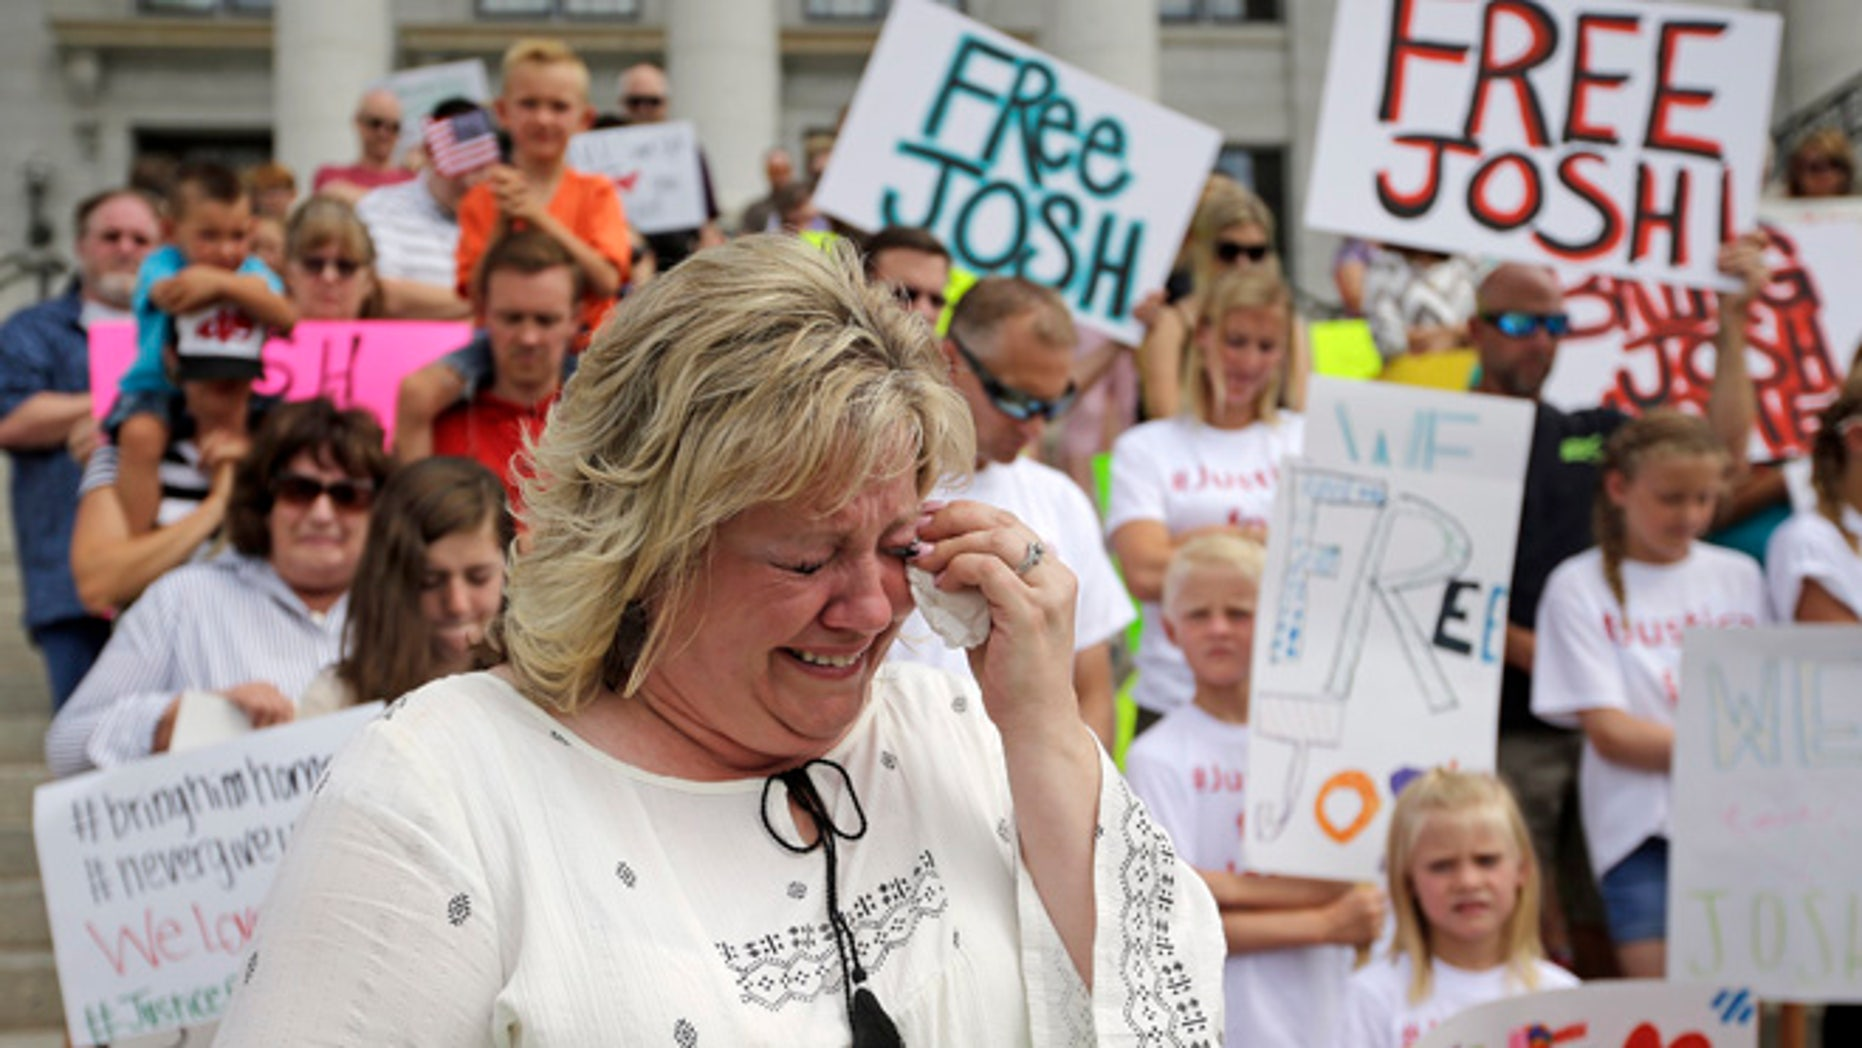 FILE - In this July 30, 2016, file photo, Laurie Holt, the mother of Joshua Holt, an American jailed in Venezuela, cries during a rally at the Utah State Capitol, in Salt Lake City.